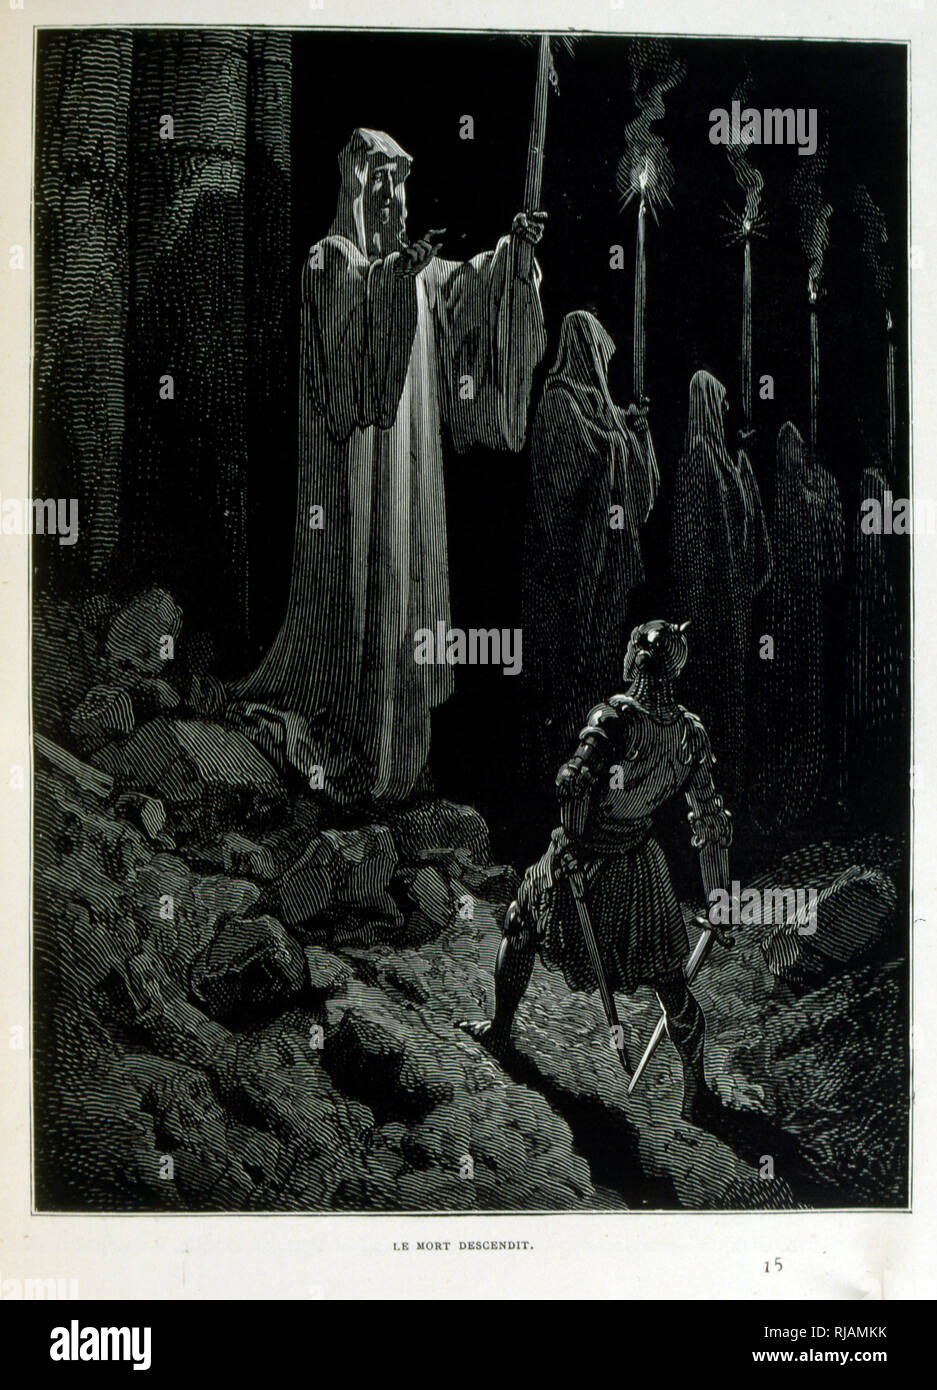 Croque-Mitaine; 1863 illustration, by Gustave Dore (1832 - 1883); French artist, printmaker, illustrator. Croque-Mitaine (The bogeyman) a maleficent character presented to children to scare them and thus make them wiser. - Stock Image